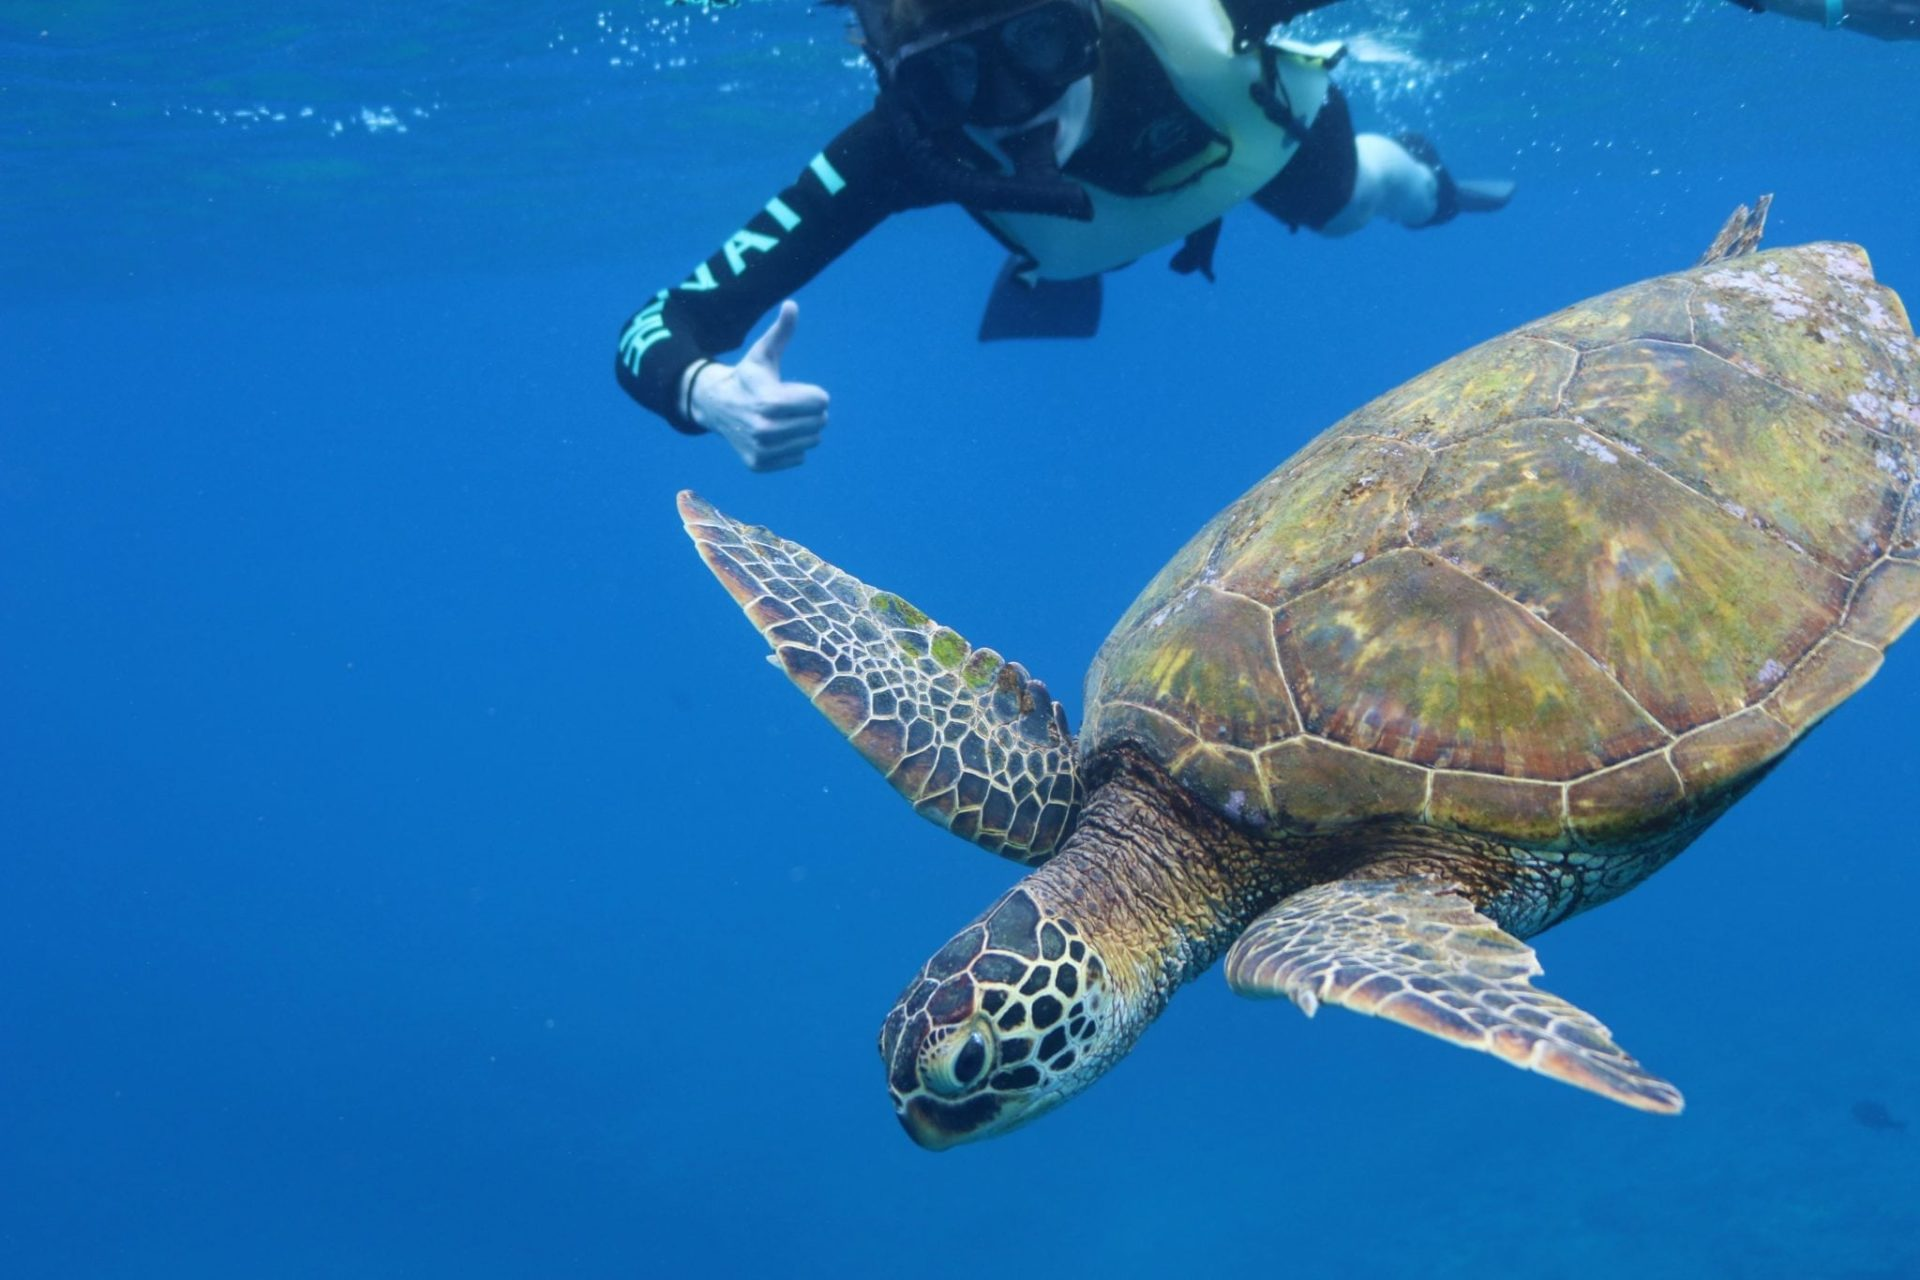 5 Ways You Can Help Save The Turtles